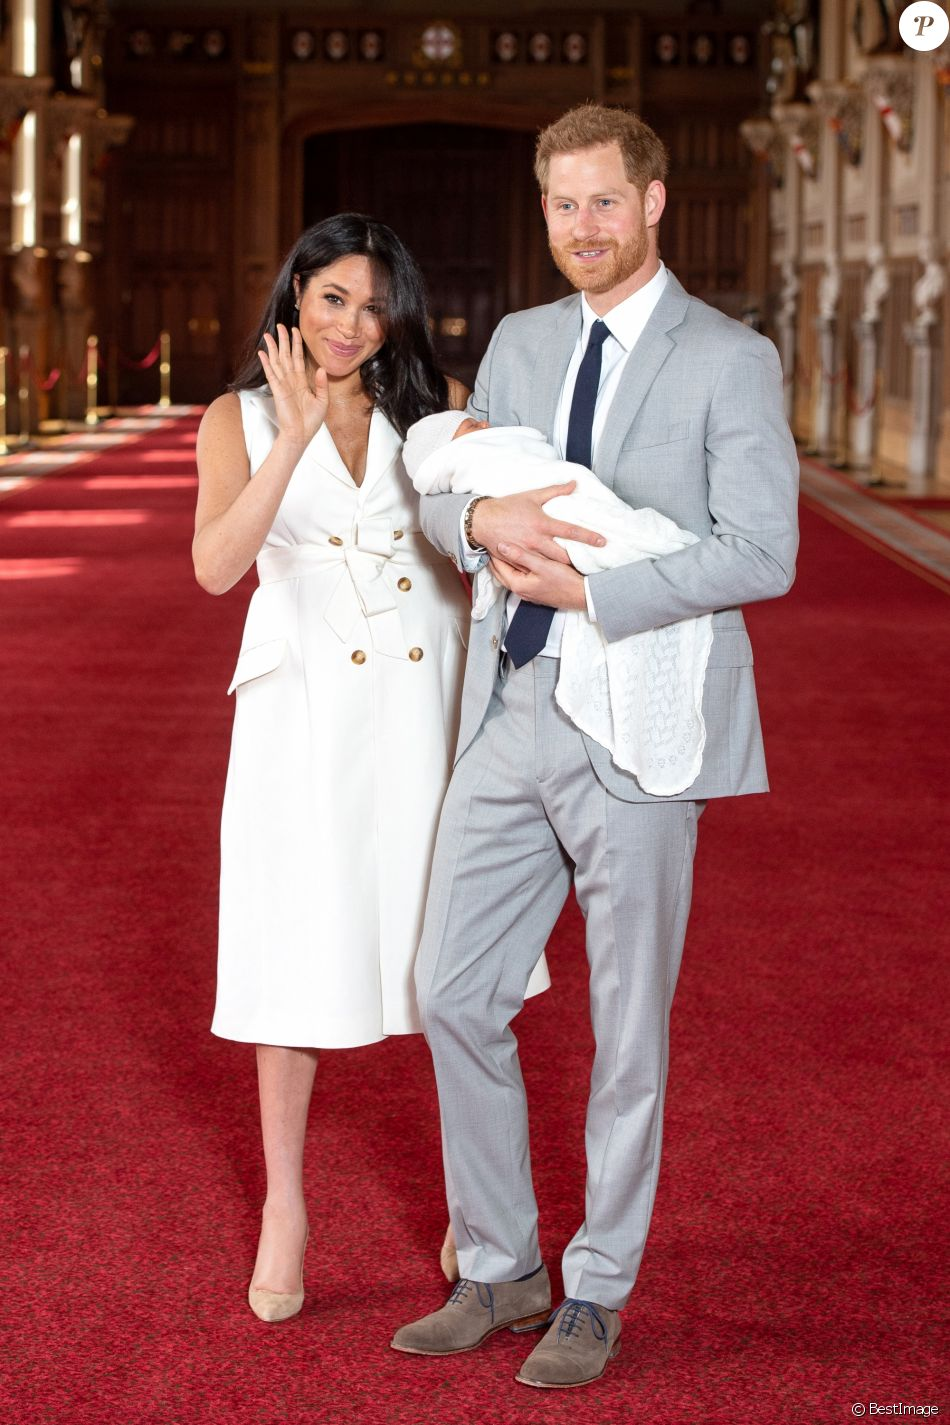 Le prince Harry et Meghan Markle, duc et duchesse de Sussex, présentent leur fils Archie Harrison Mountbatten-Windsor dans le hall St George au château de Windsor le 8 mai 2019.